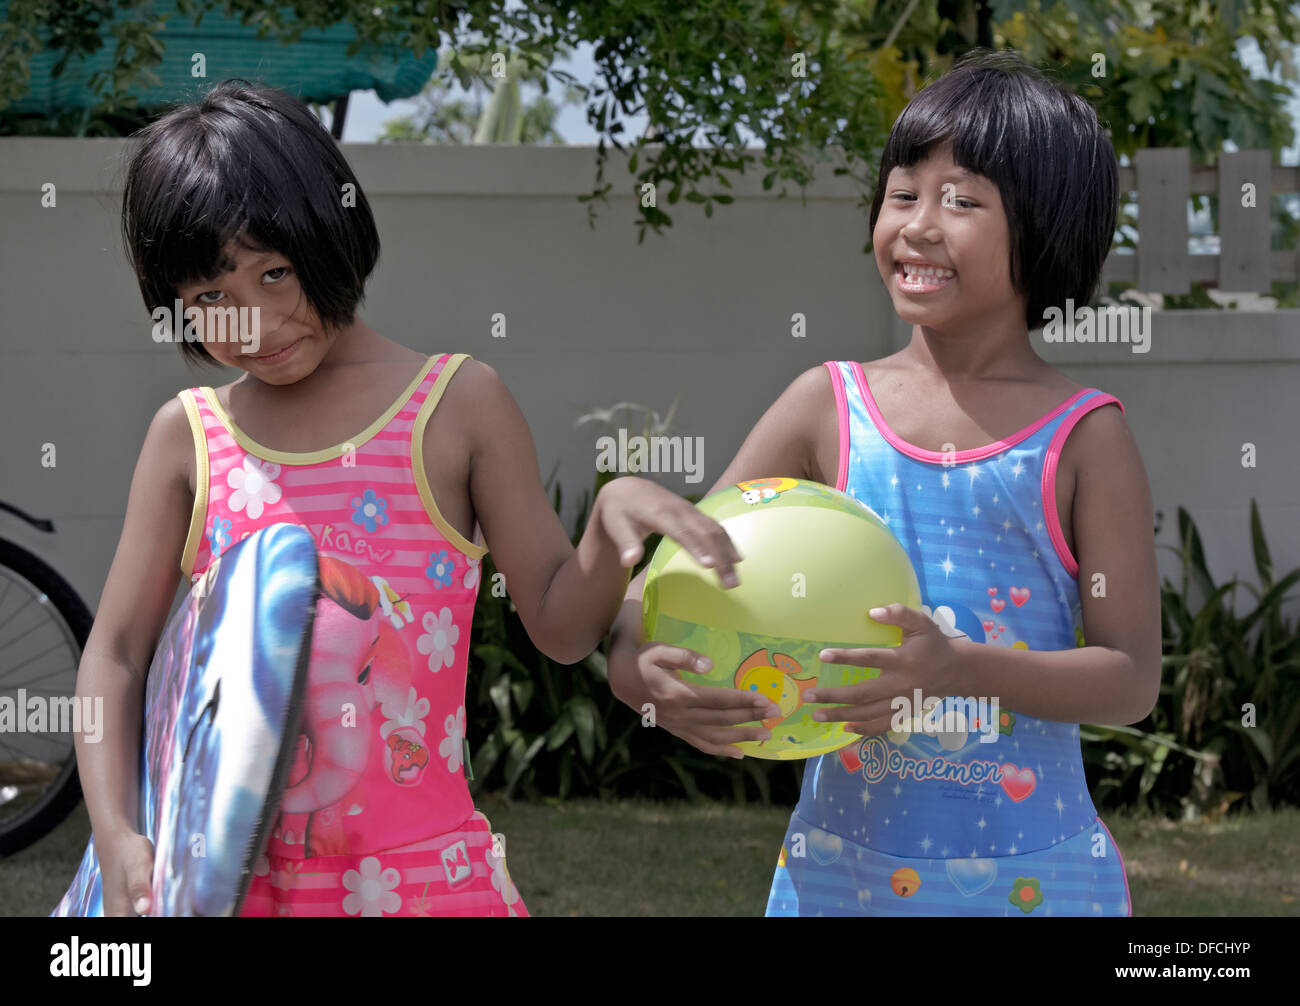 Identical Thai 6 year old twin sisters. Thailand S. E. Asia - Stock Image